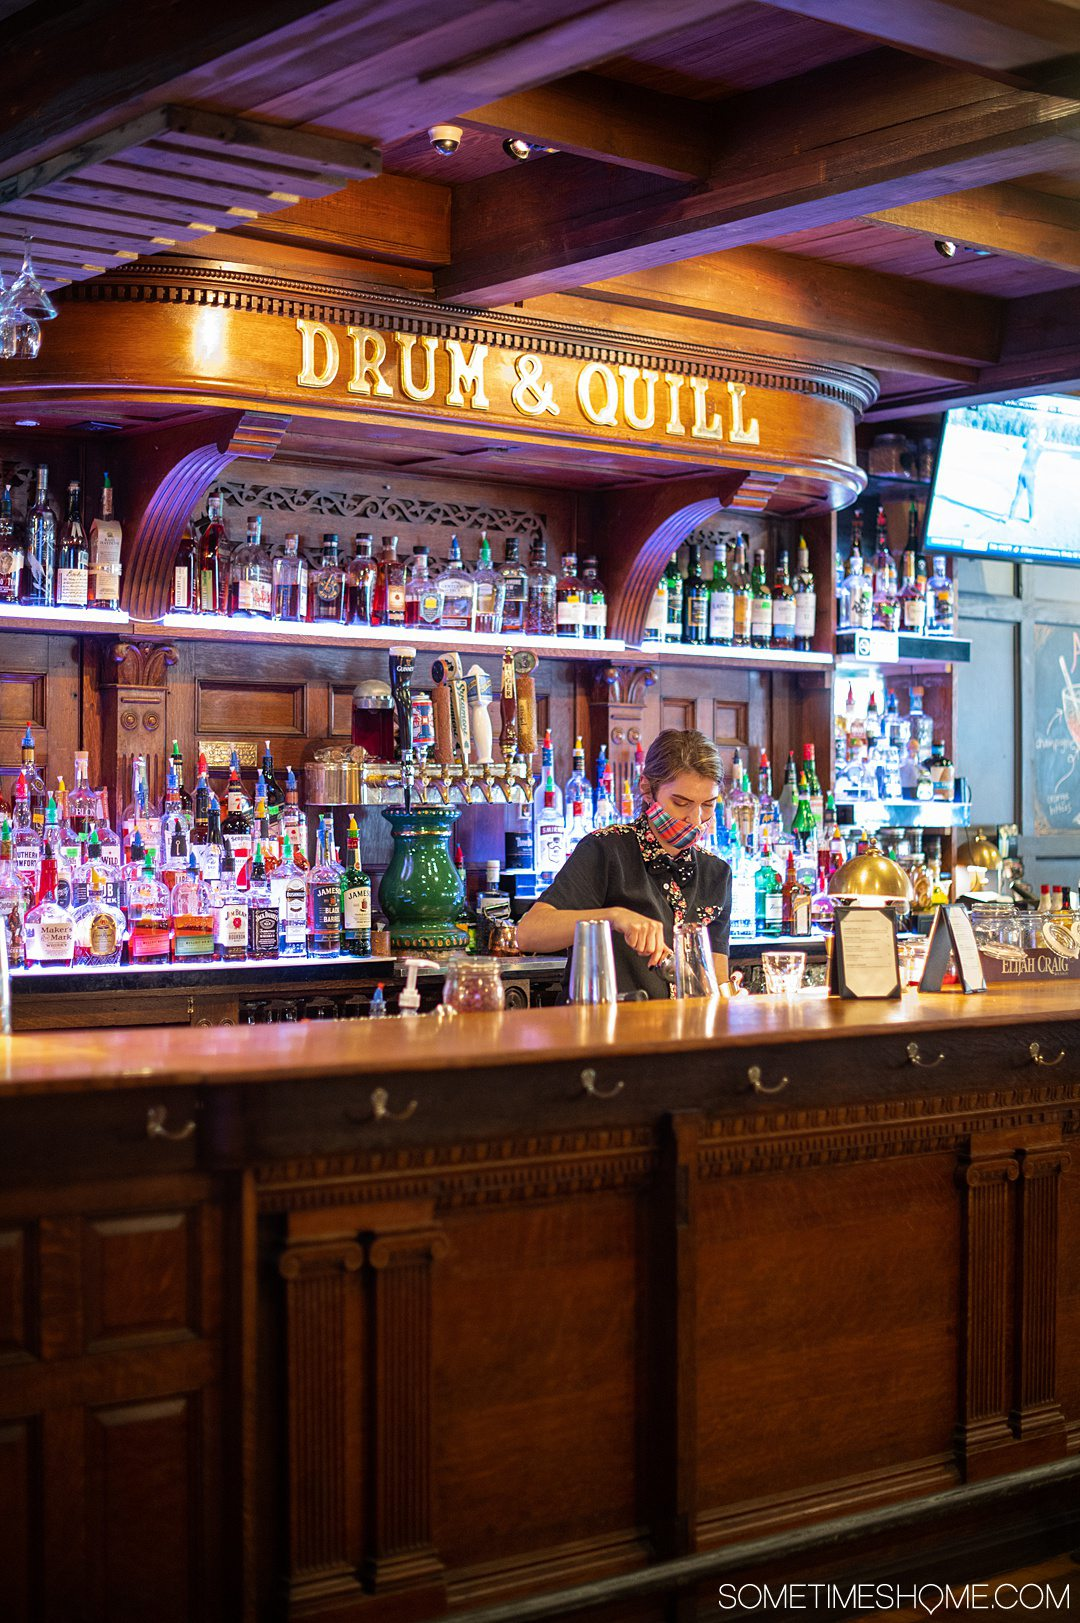 A woman bartending behind the wood bar at Drum & Quill.